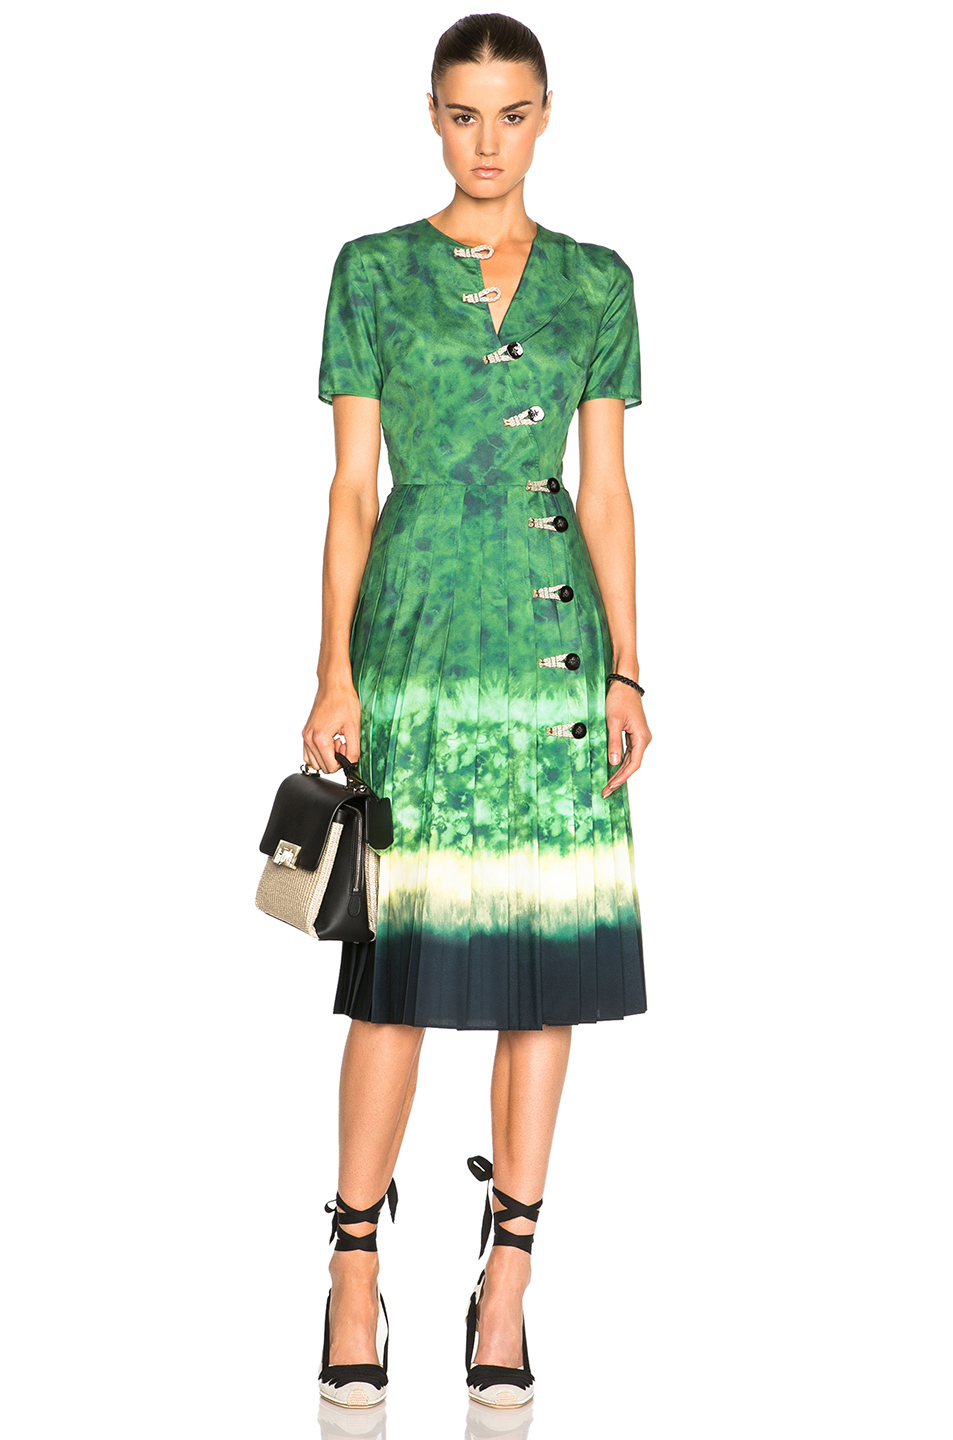 ALTUZARRA ILARI DRESS $ 2,295